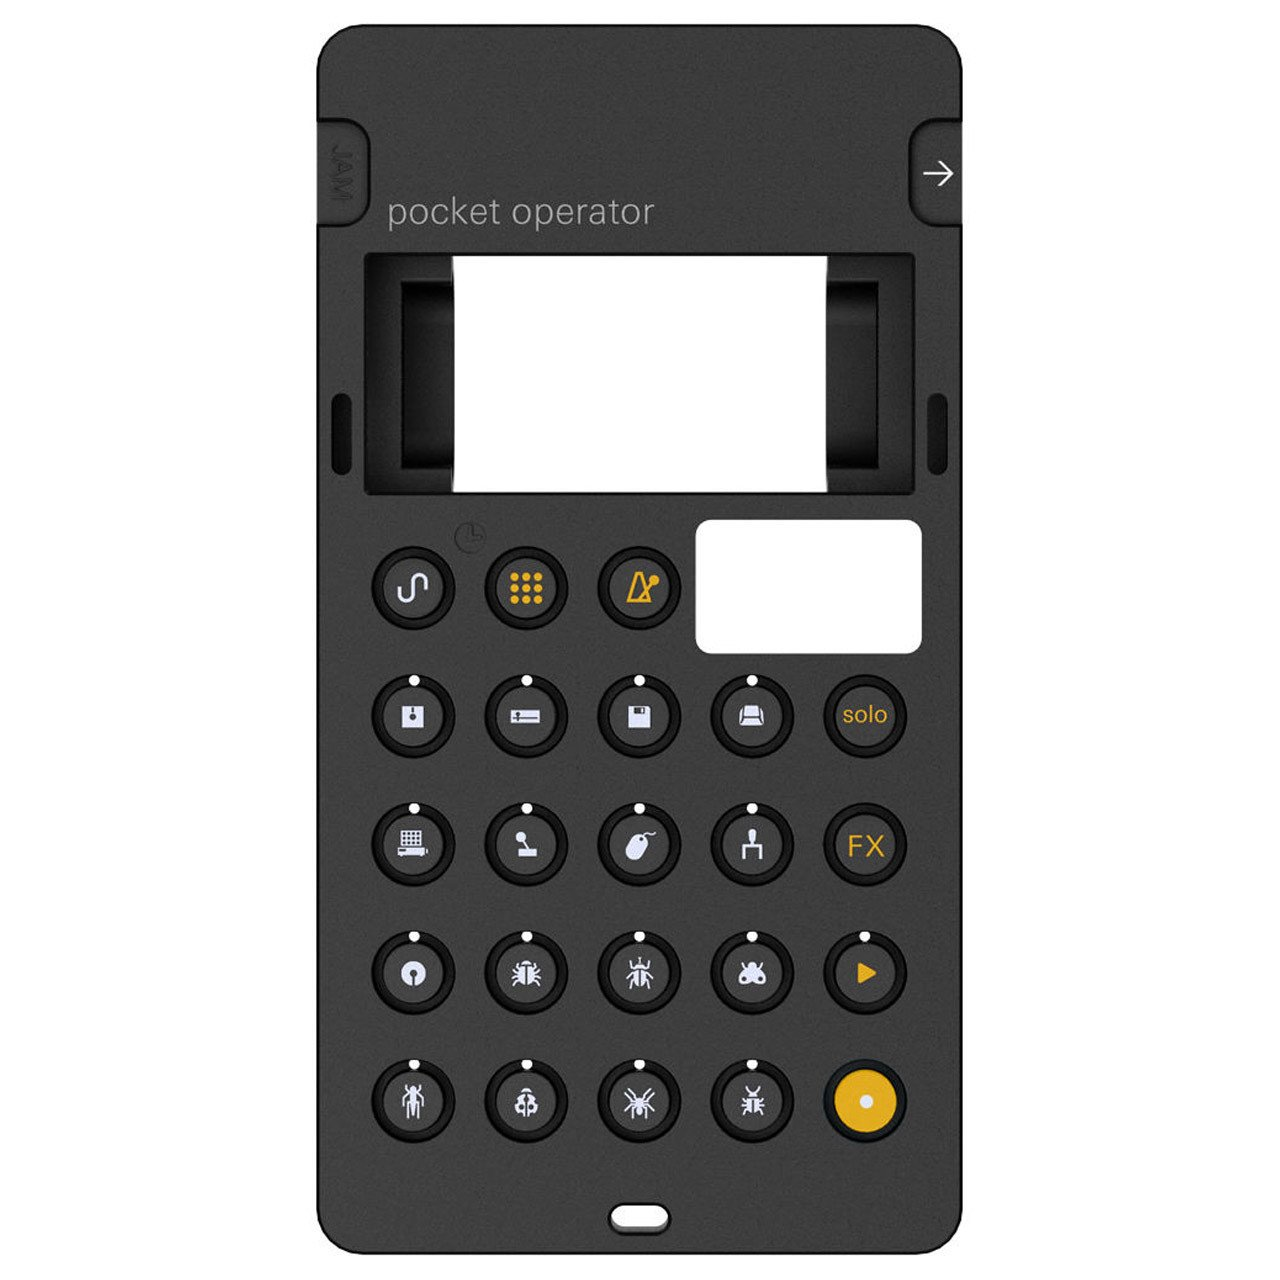 Keyboard Accessories - Teenage Engineering CA-24 Silicone Pro-case For PO-24 Pocket Operator